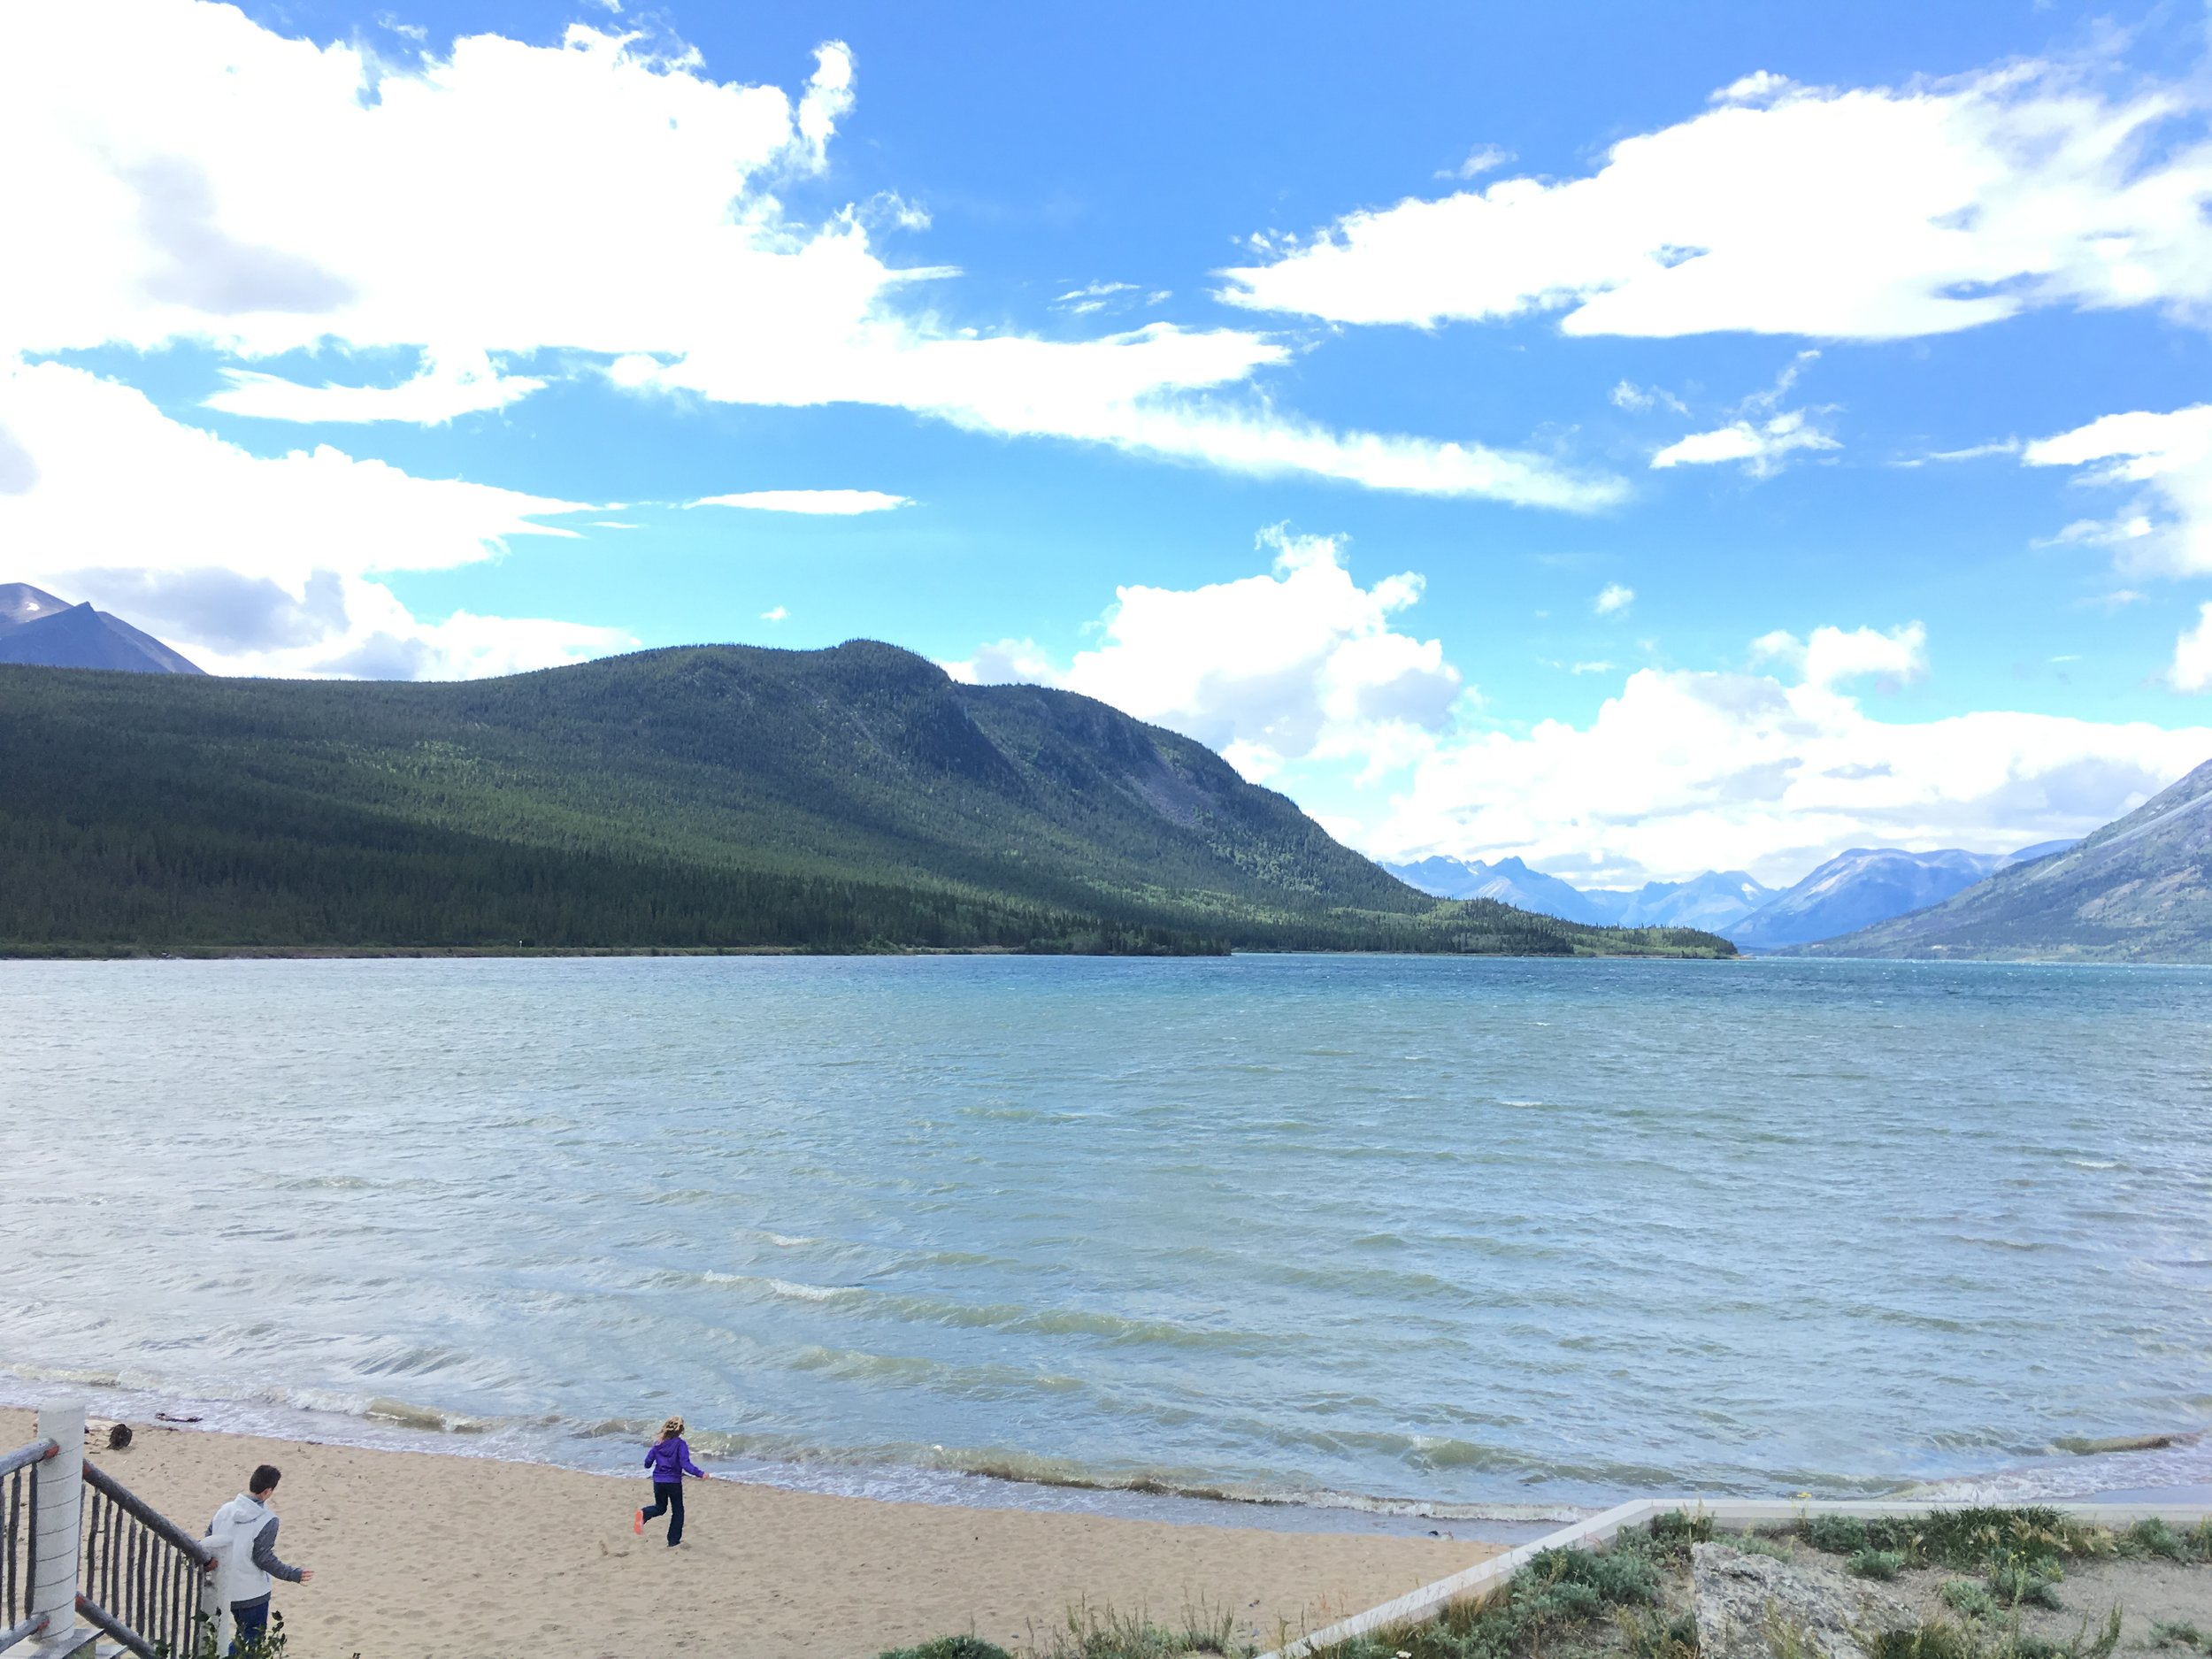 Full Day Yukon Van Tours - Skagway, Alaska